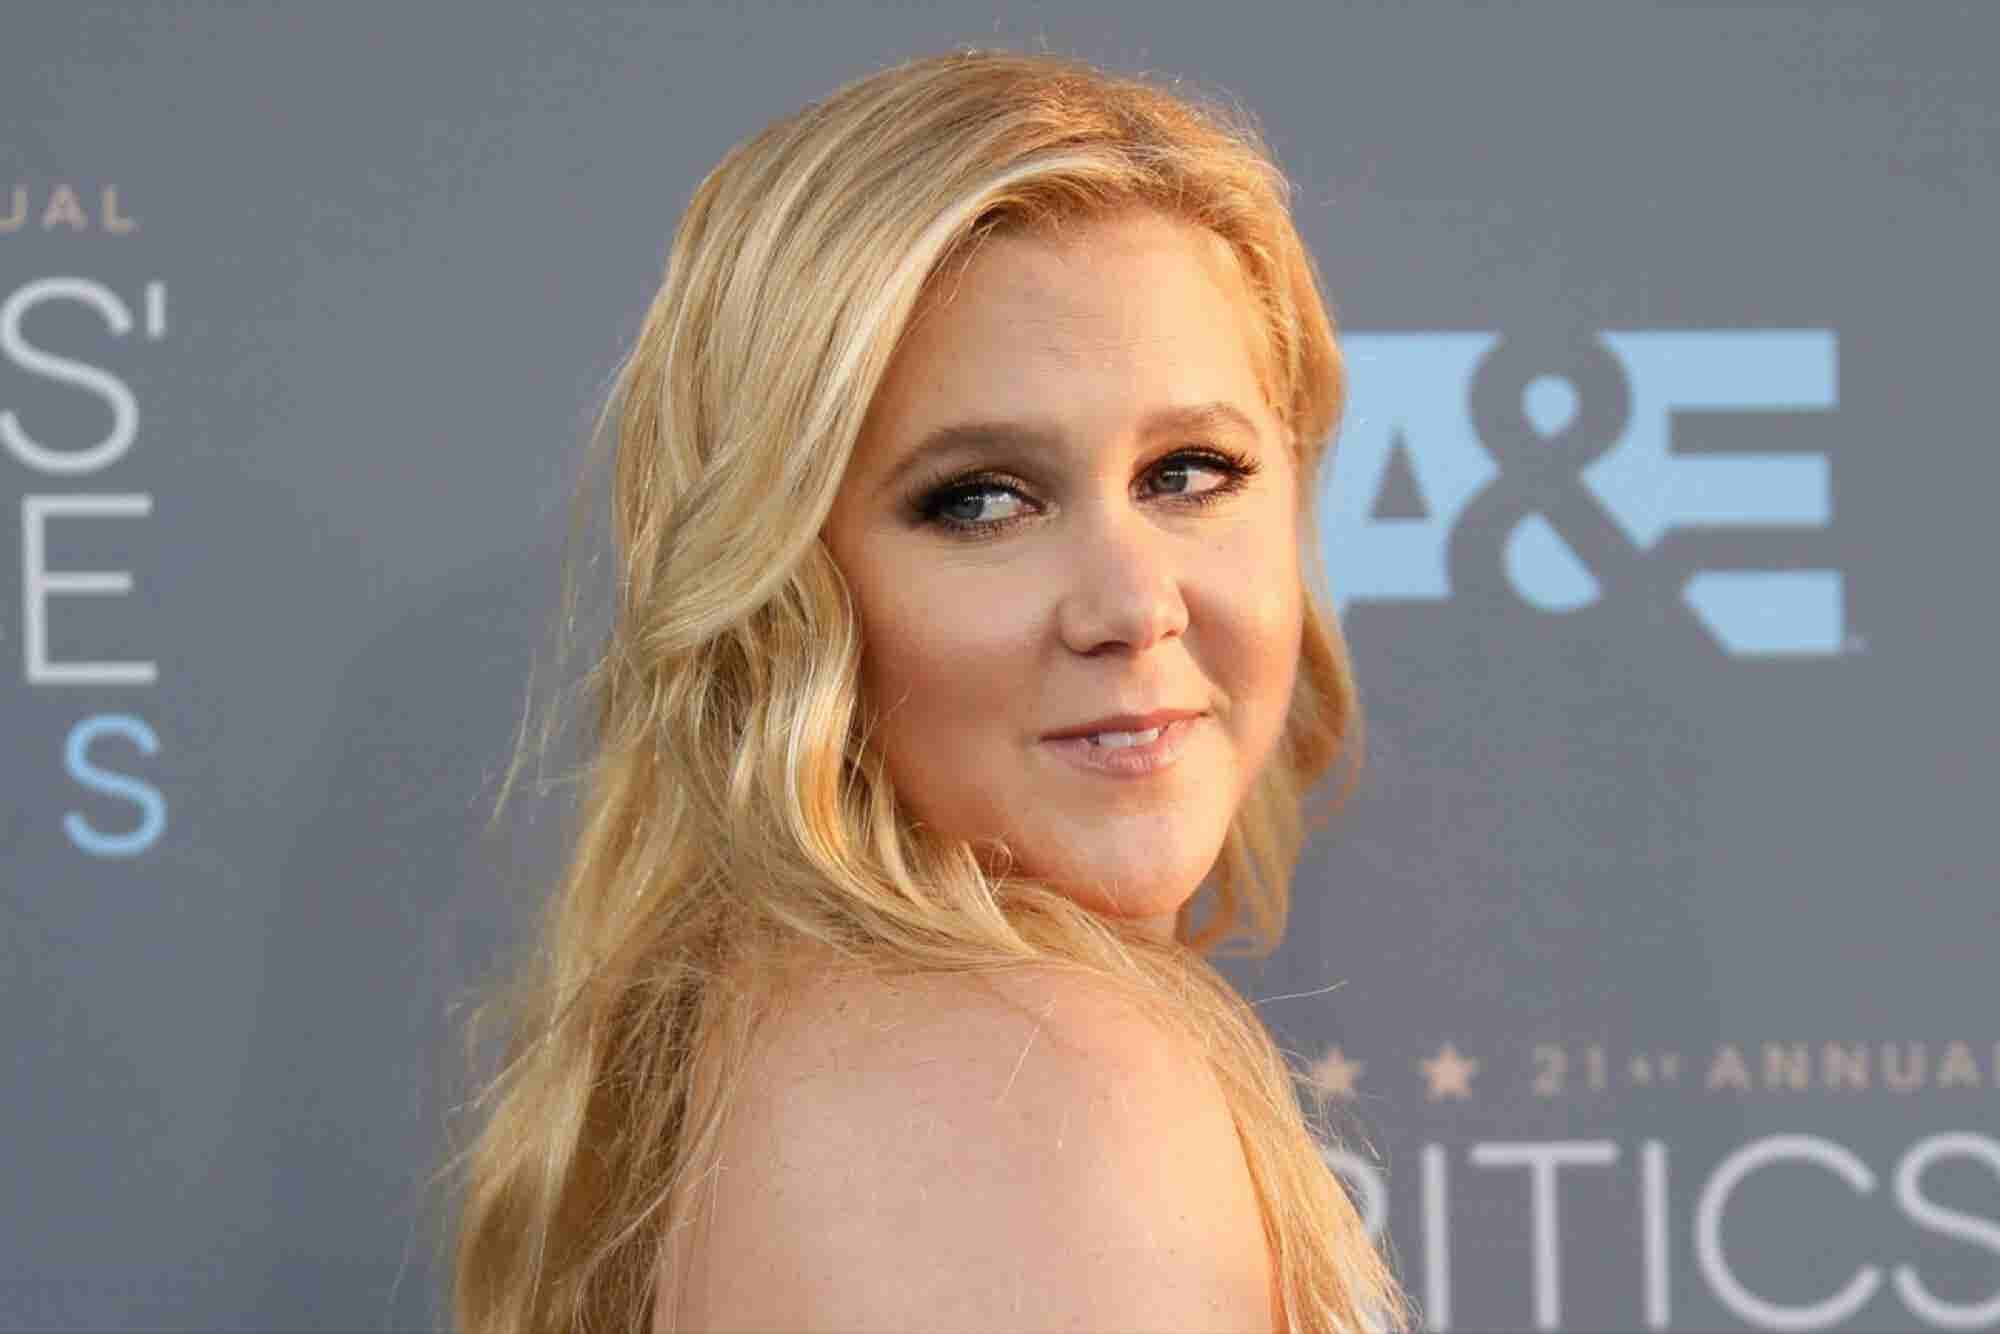 What You Can Learn From 'Glamour's' Brand-Tarnishing Amy Schumer 'Plus Size' Gaffe